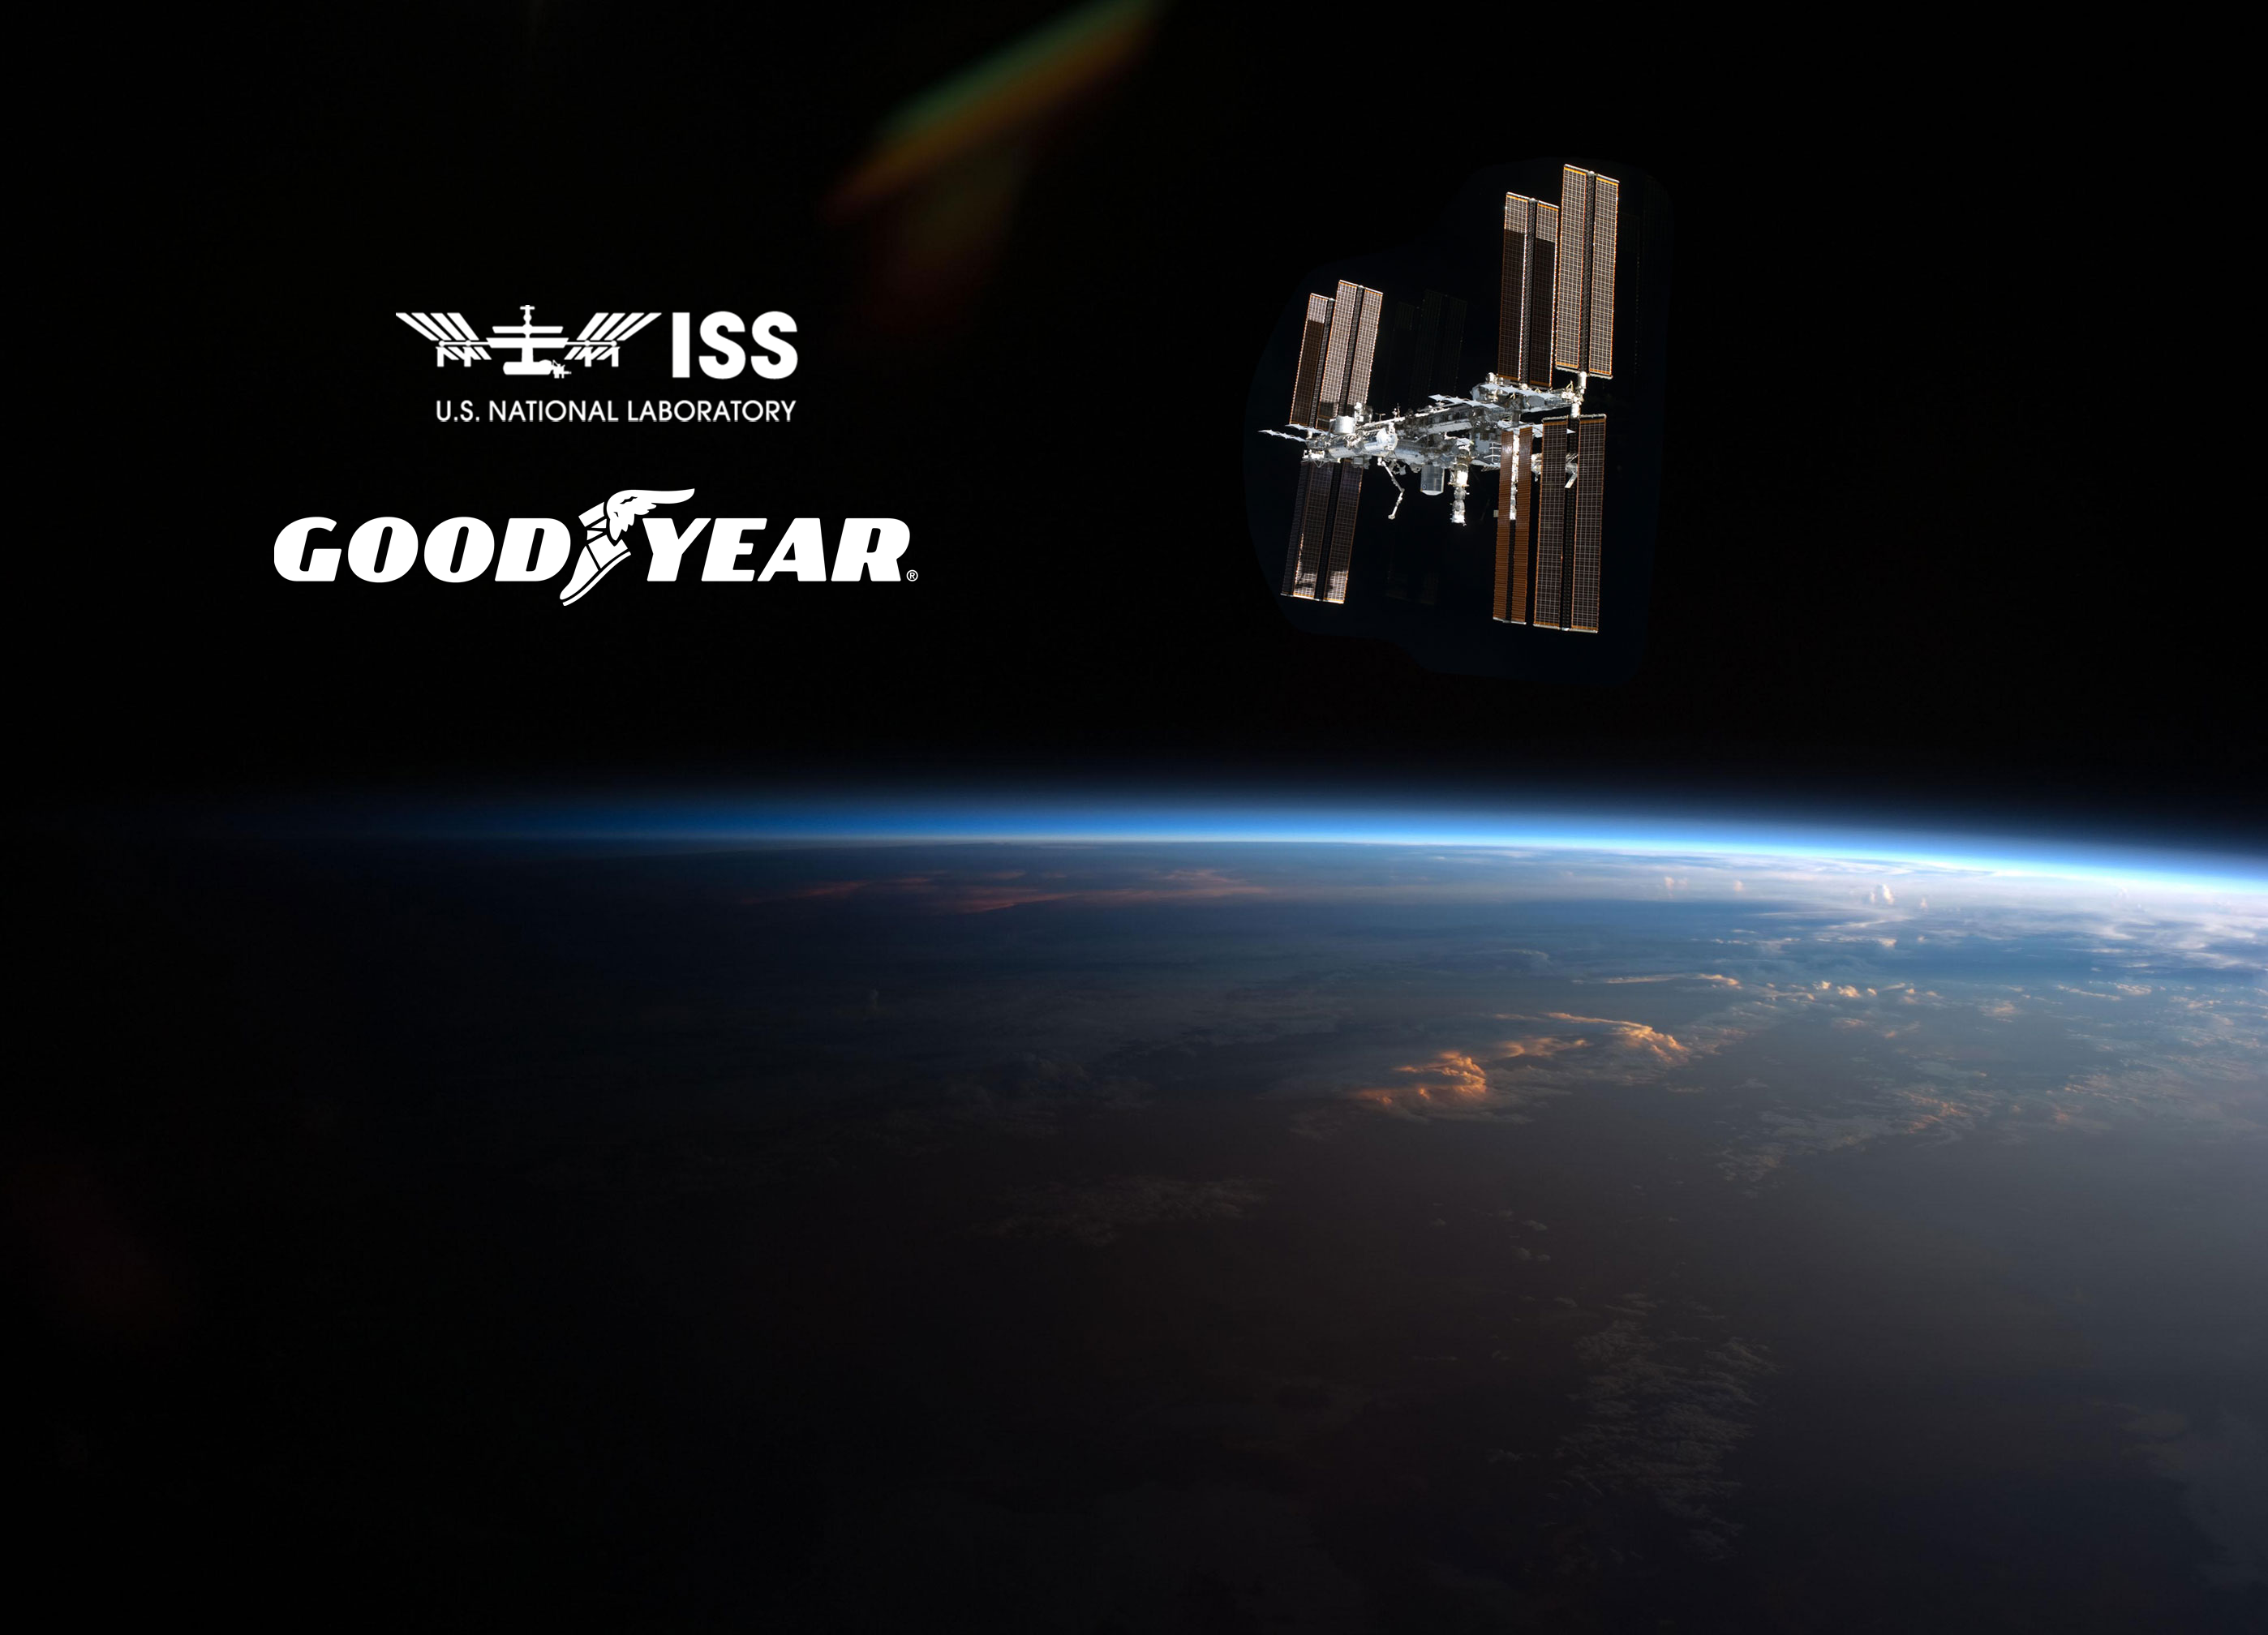 iss.good.year